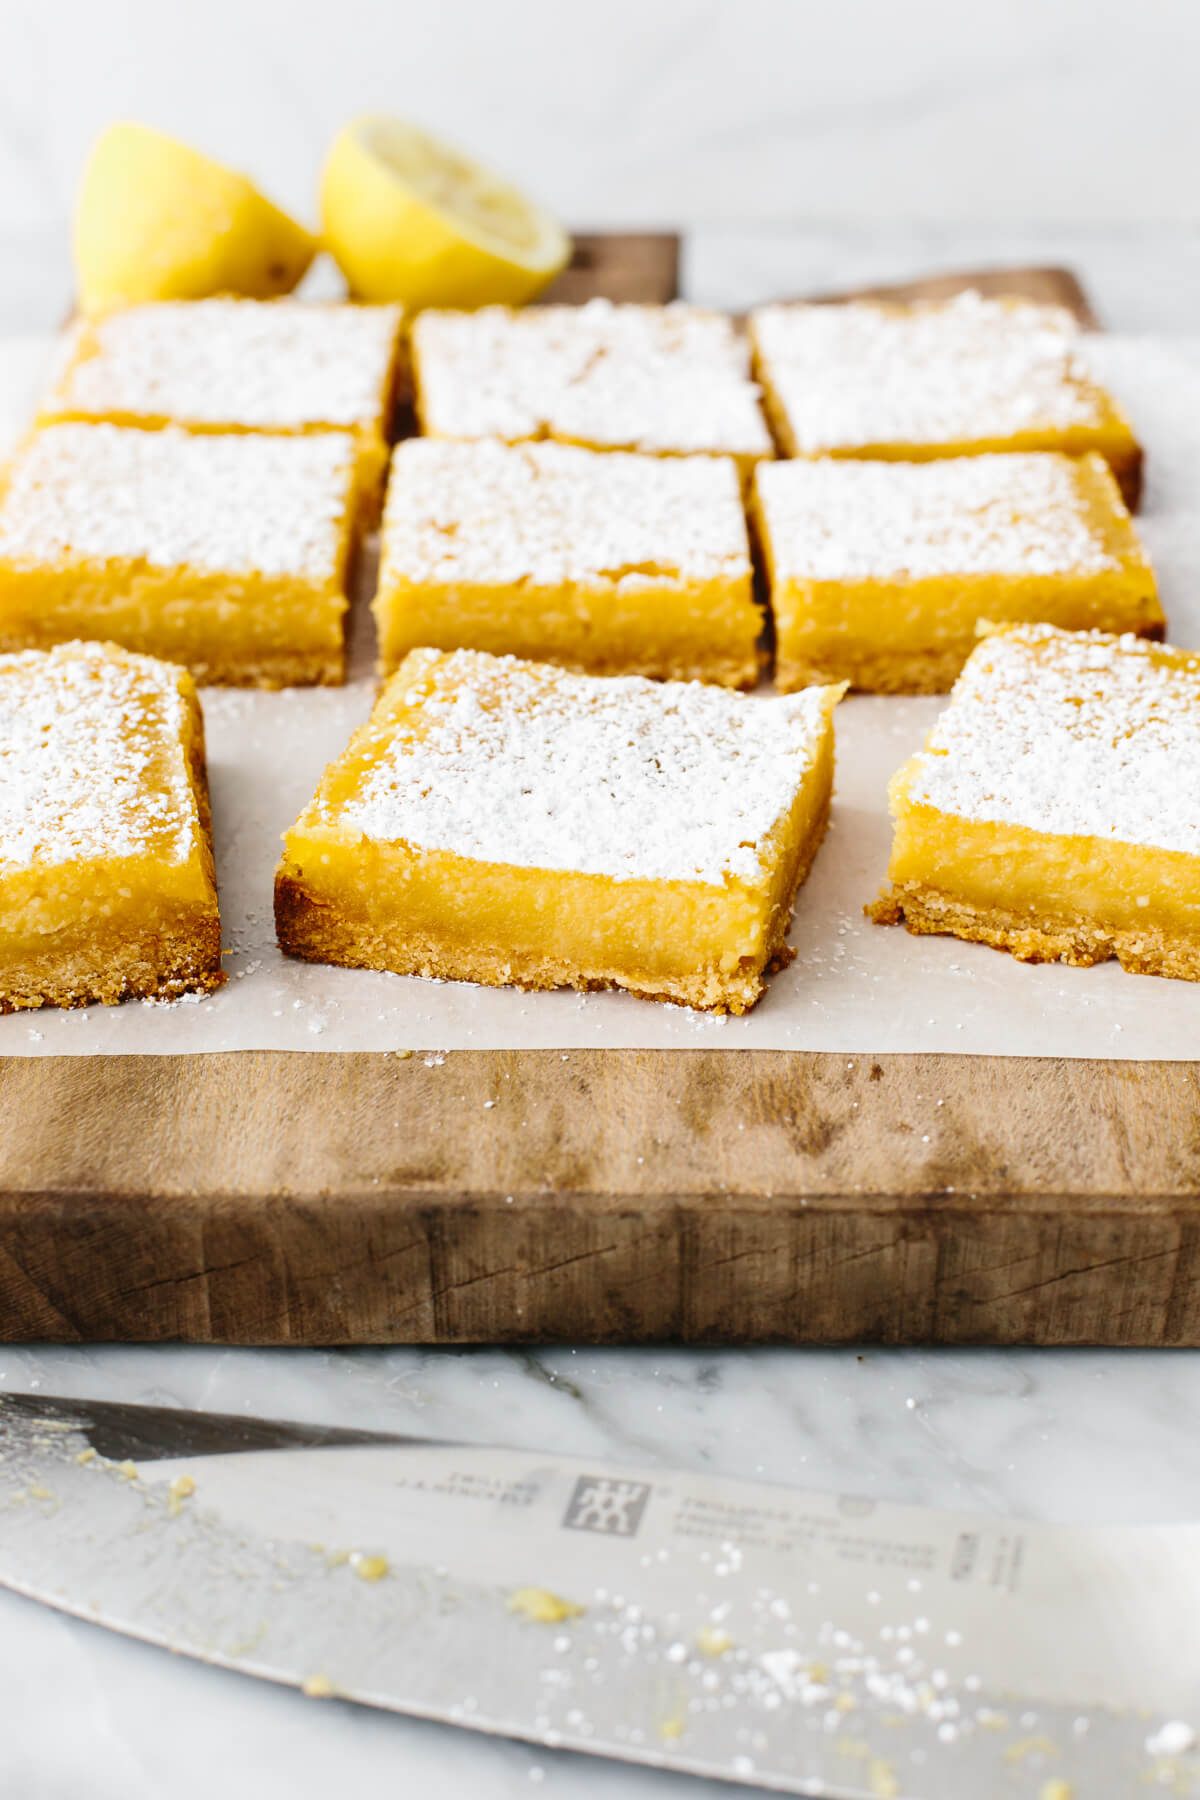 Gluten-free lemon bars on a wooden board.